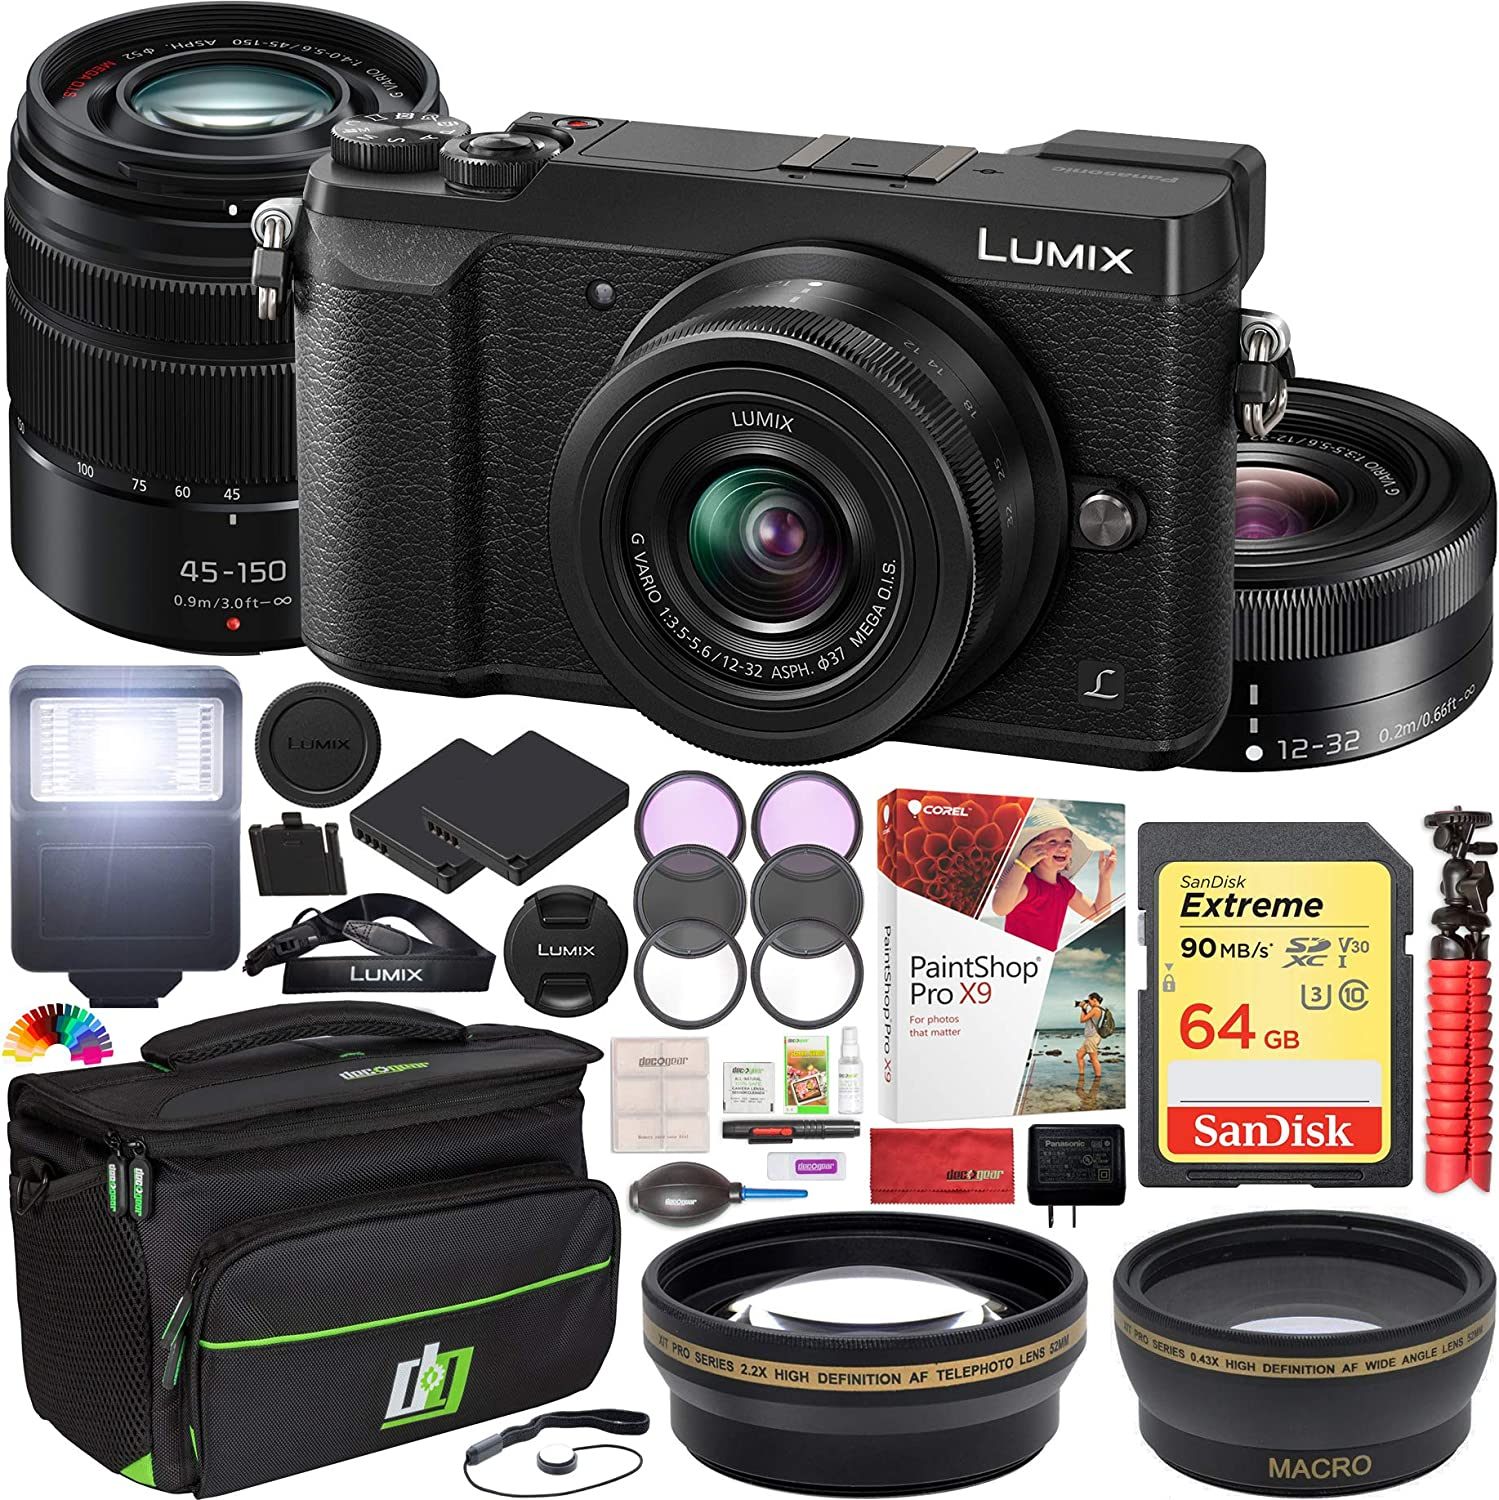 Panasonic LUMIX GX85 4K Mirrorless Camera with 12-32mm & 45-150mm Lenses Black Bundle with 64GB Memory Card, Paintshop Pro 2018 Digital Download, Bag, Flash and Accessories (12 Items)